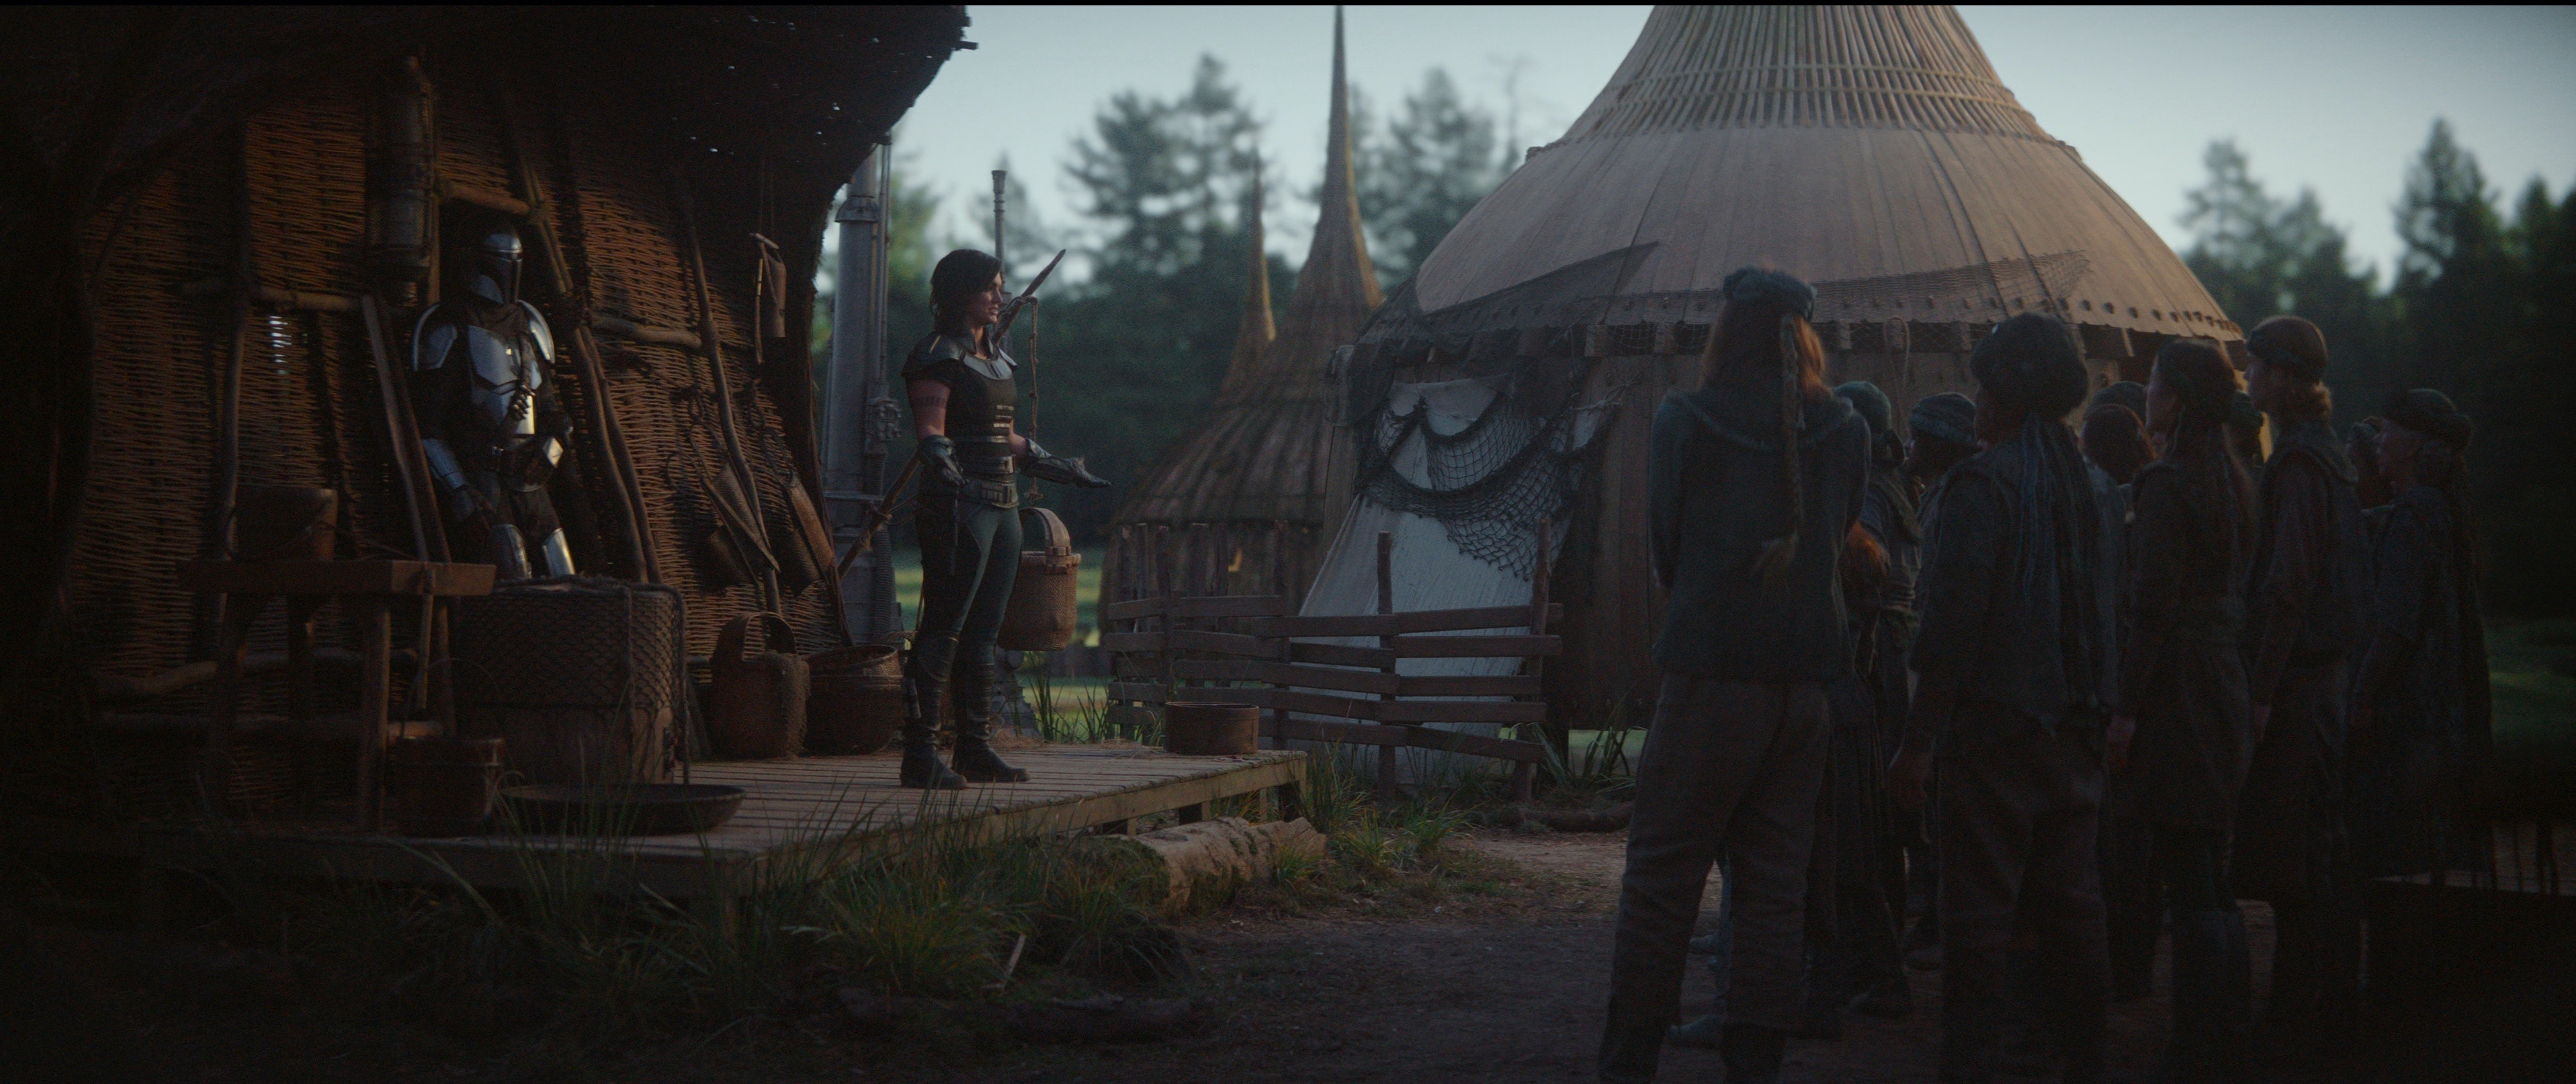 The Mandalorian Took His Helmet Off But Fans Were Disappointed 'the mandalorian' season 2 thoughts and favorite moments. the mandalorian took his helmet off